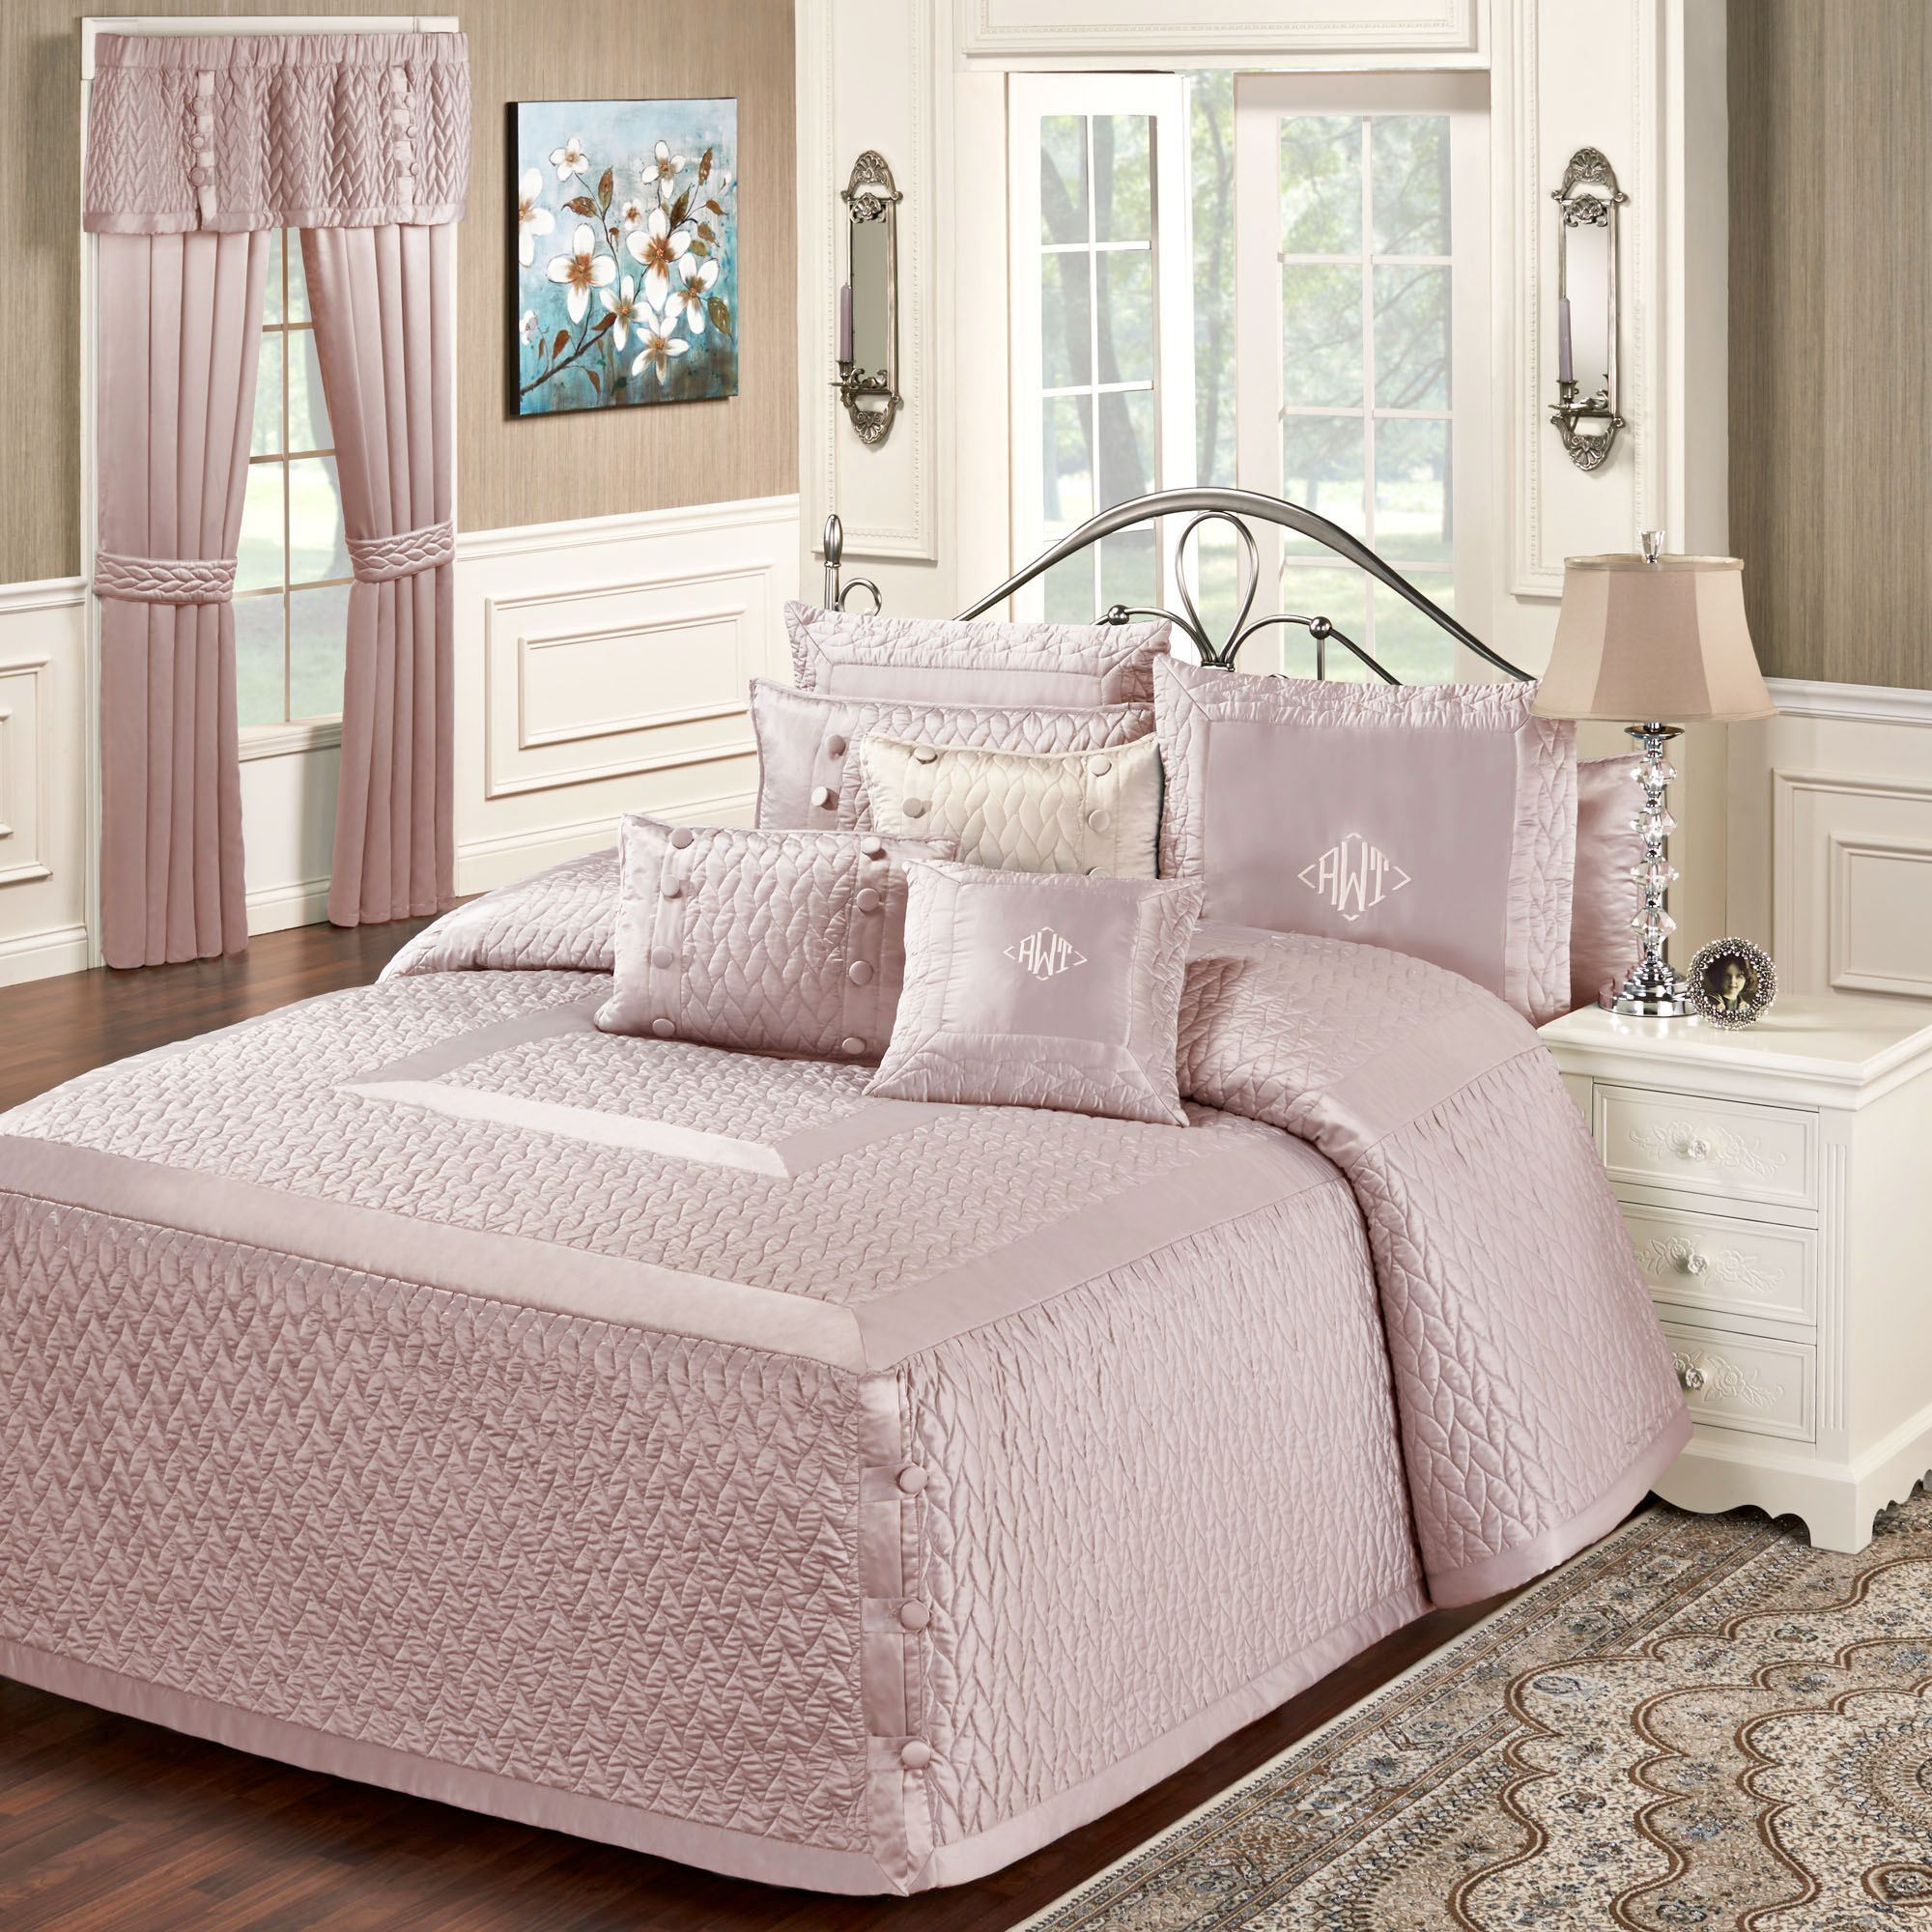 pink doom bedspread raiser using rose dusty light comforter